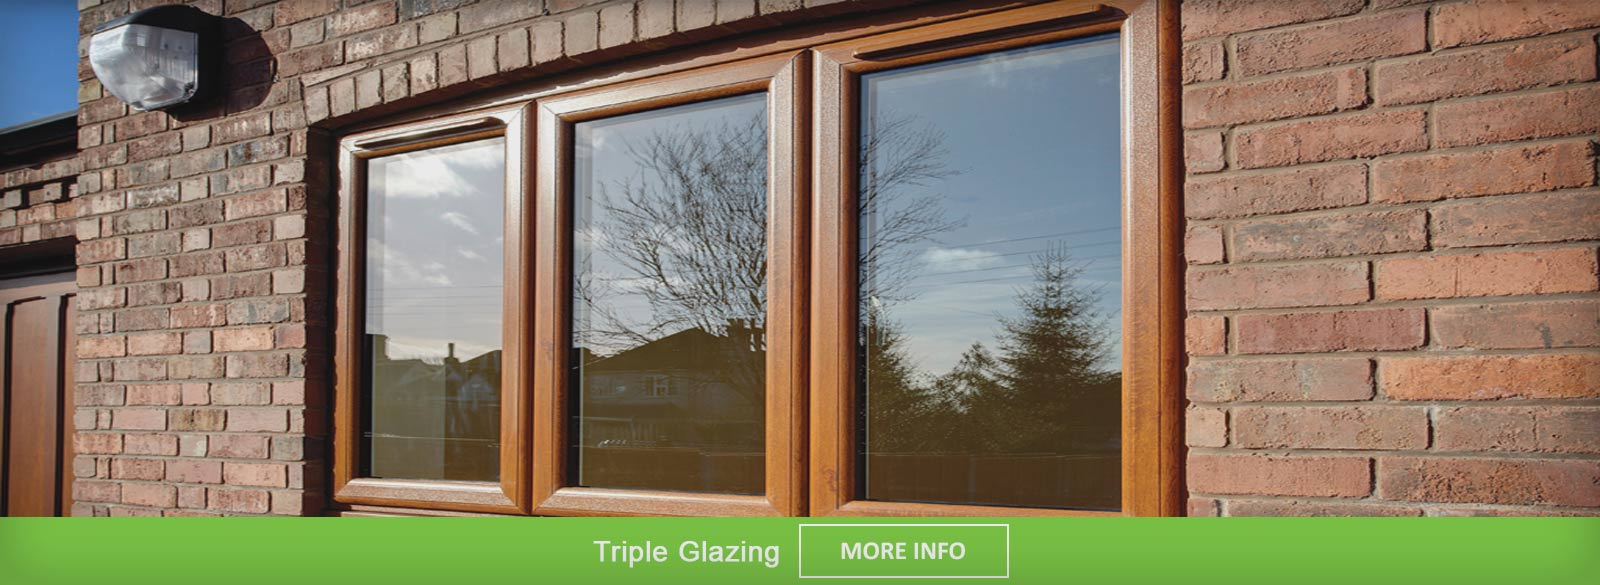 Window installations fitter of high quality windows for Wood windows colorado